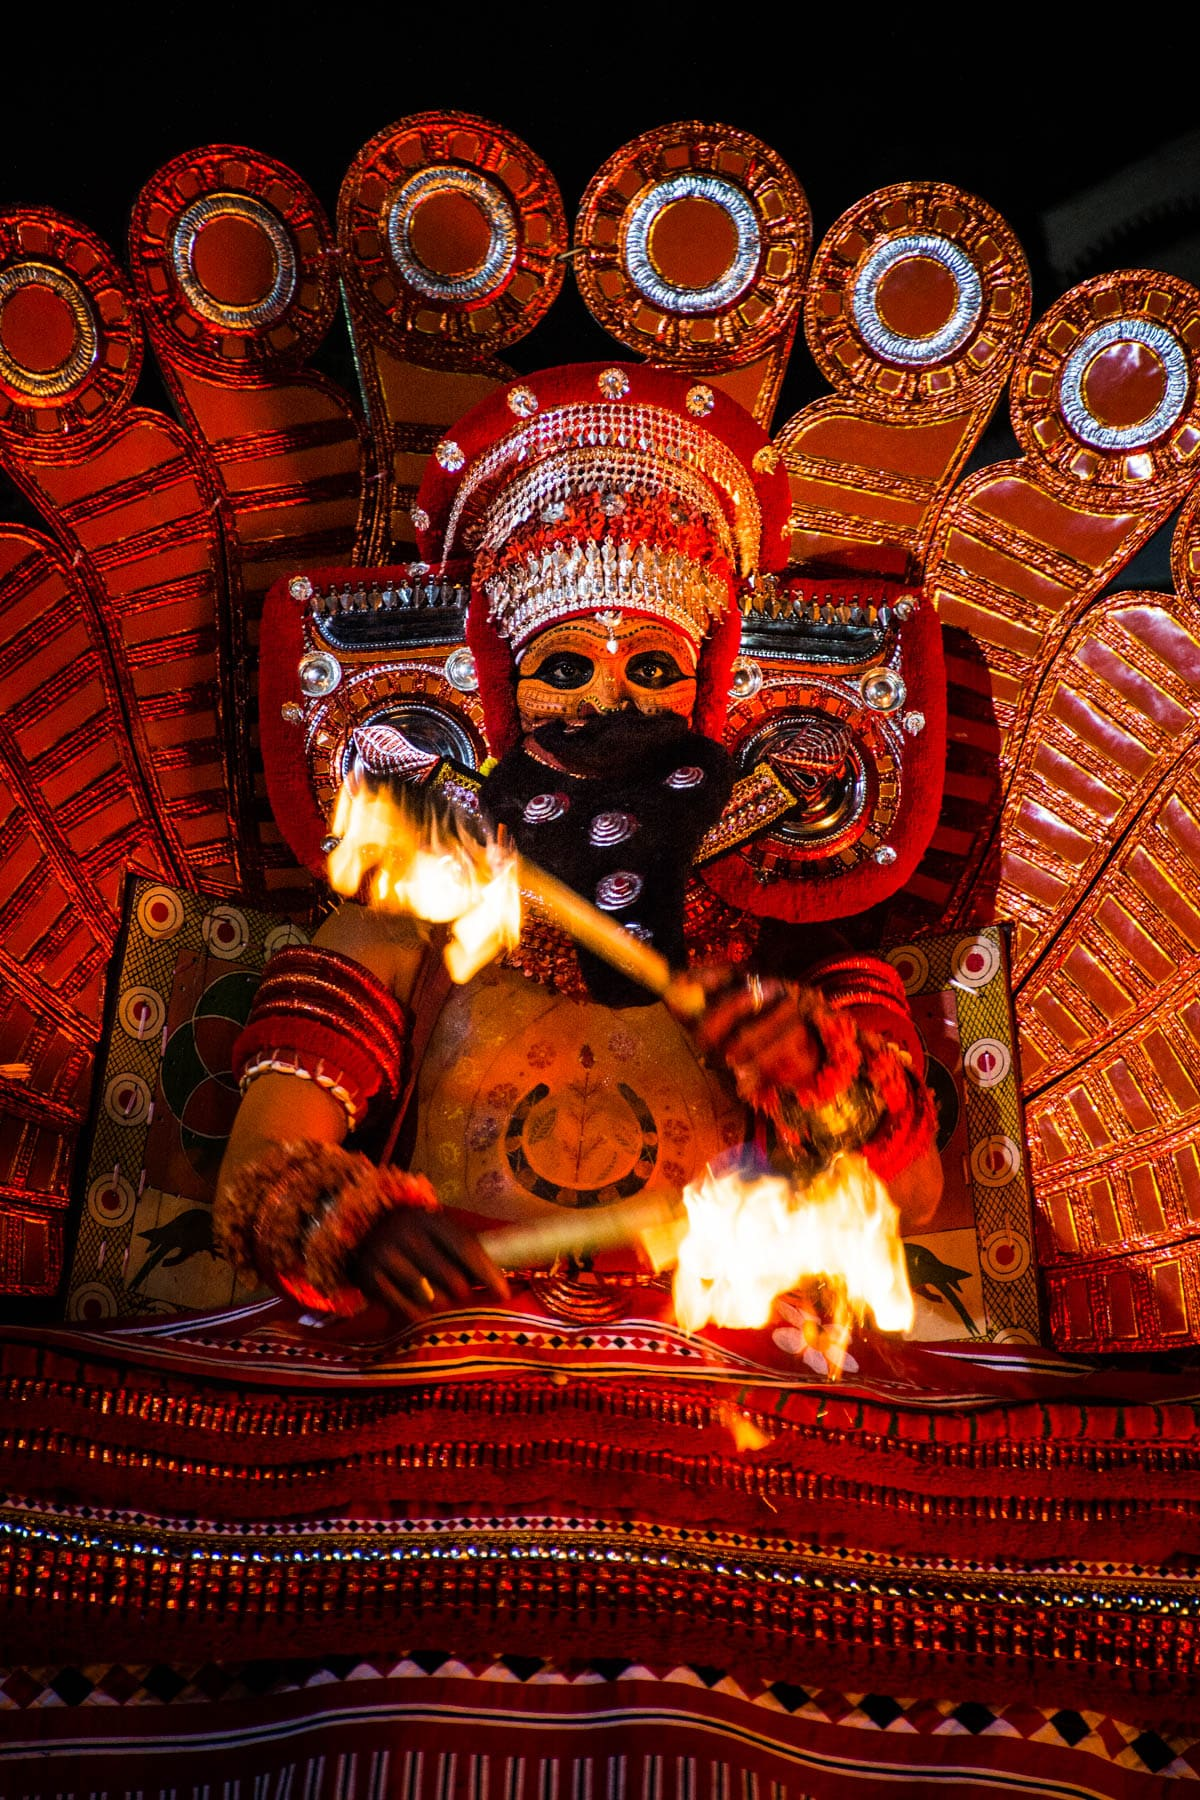 A night of fiery Theyyam dance in Kannur, Kerala is one of many top off the beaten track sights in India.